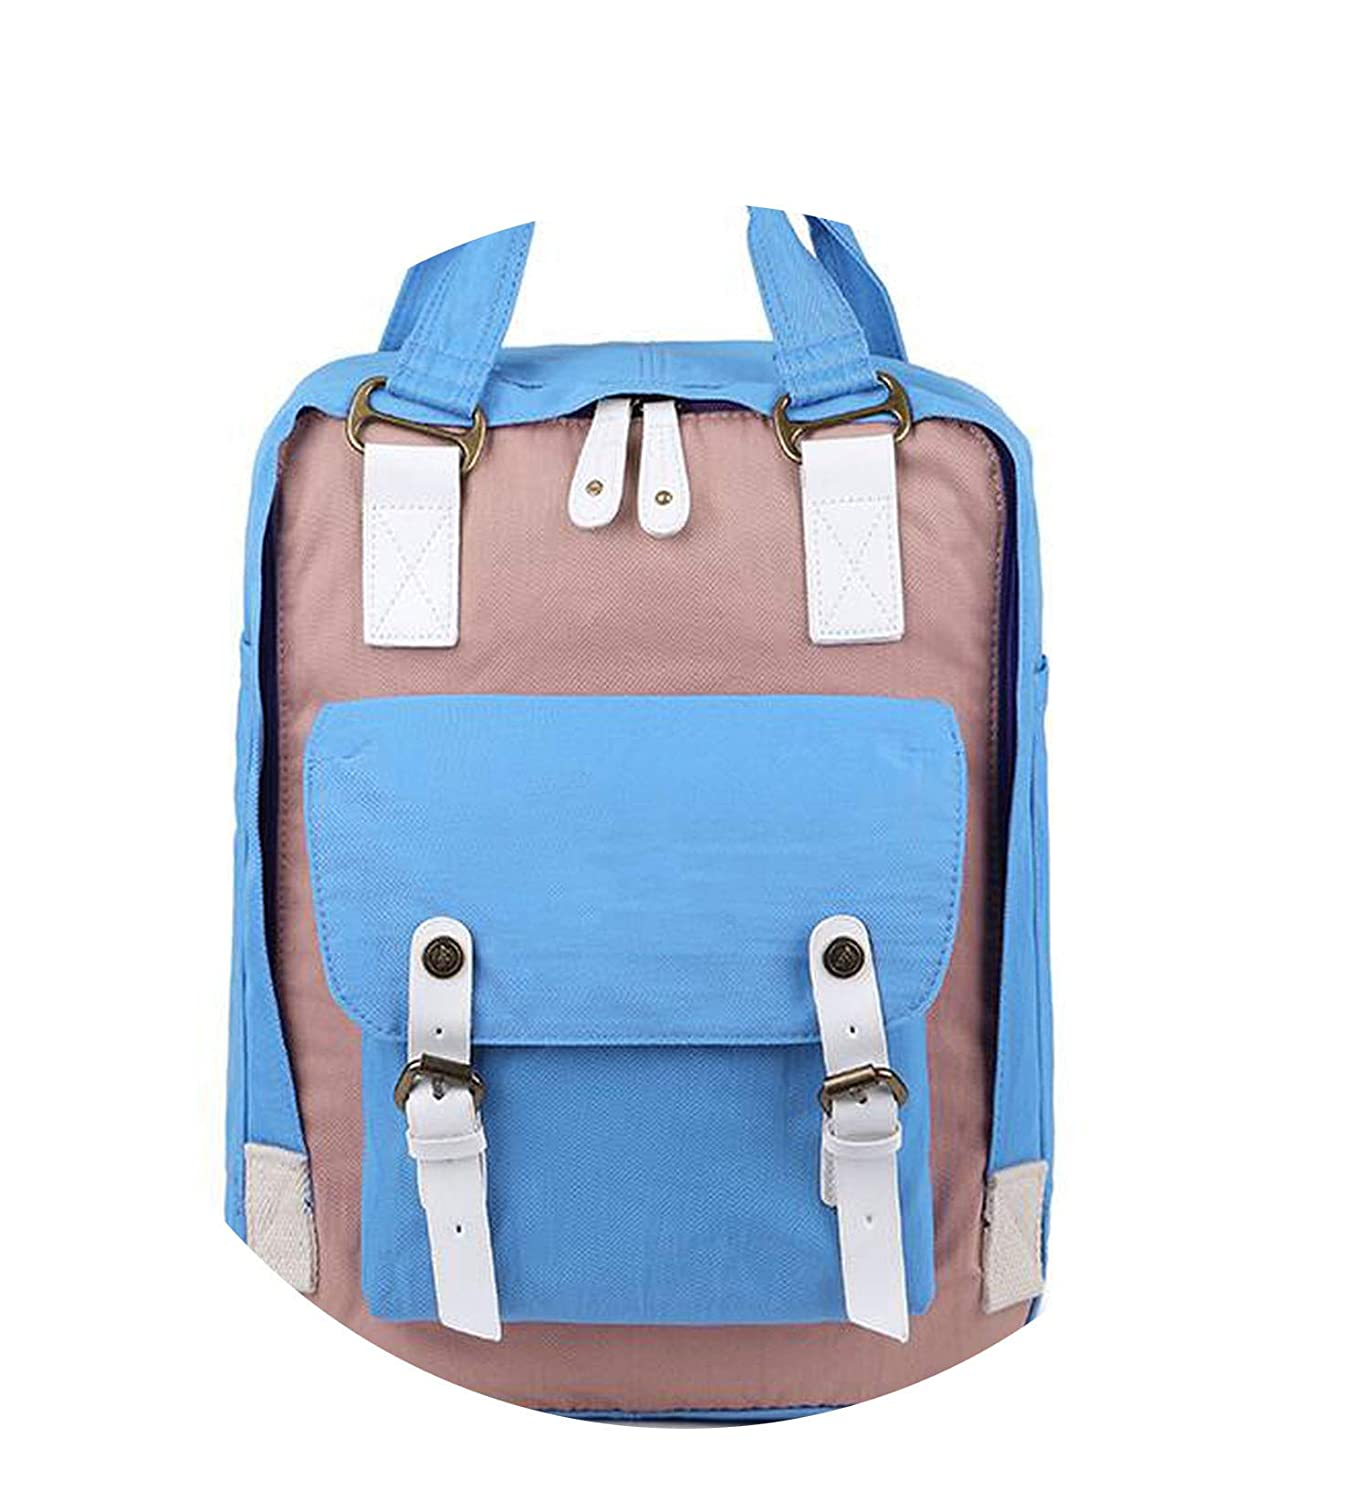 Amazon.com: Students Fashion Backpack Mochila Feminina Mujer ...